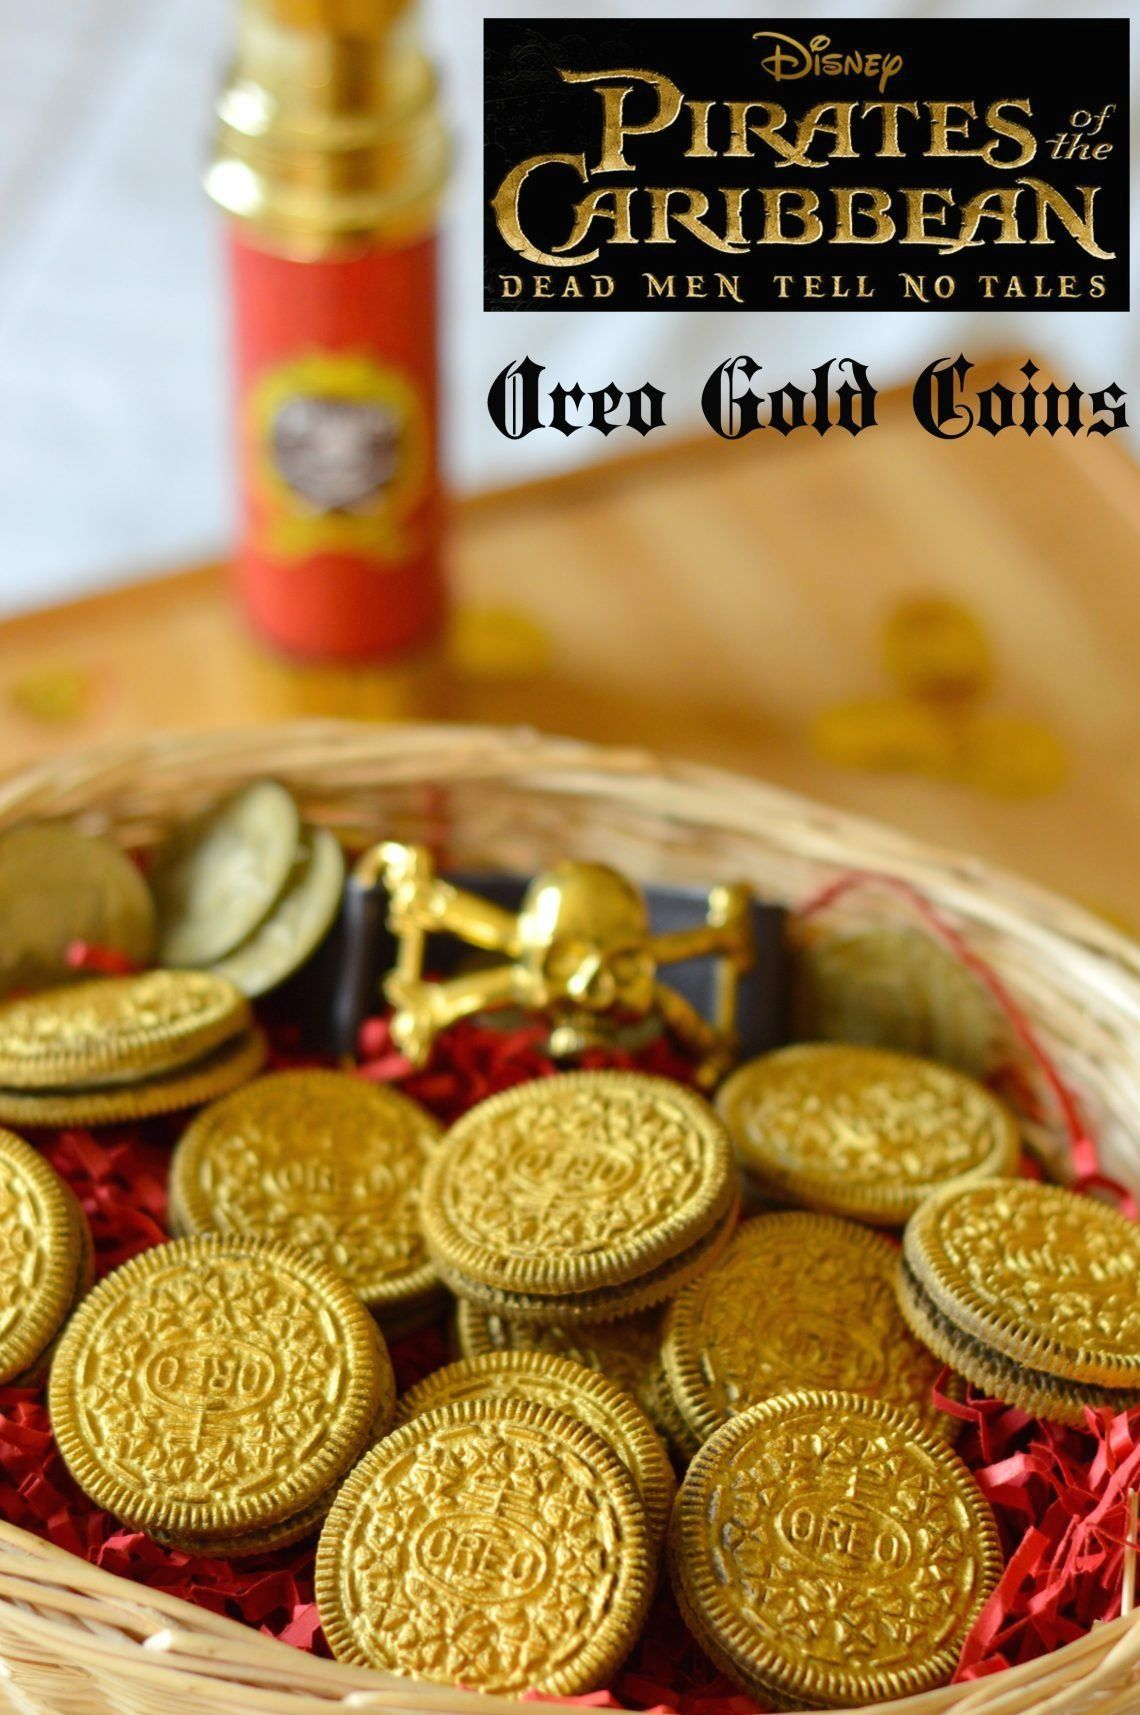 Pirates Of The Caribbean Dead Men Tell No Tales Edible Gold Coin Activity Sheets 1000 In 2020 Pirate Halloween Party Pirate Party Food Caribbean Party